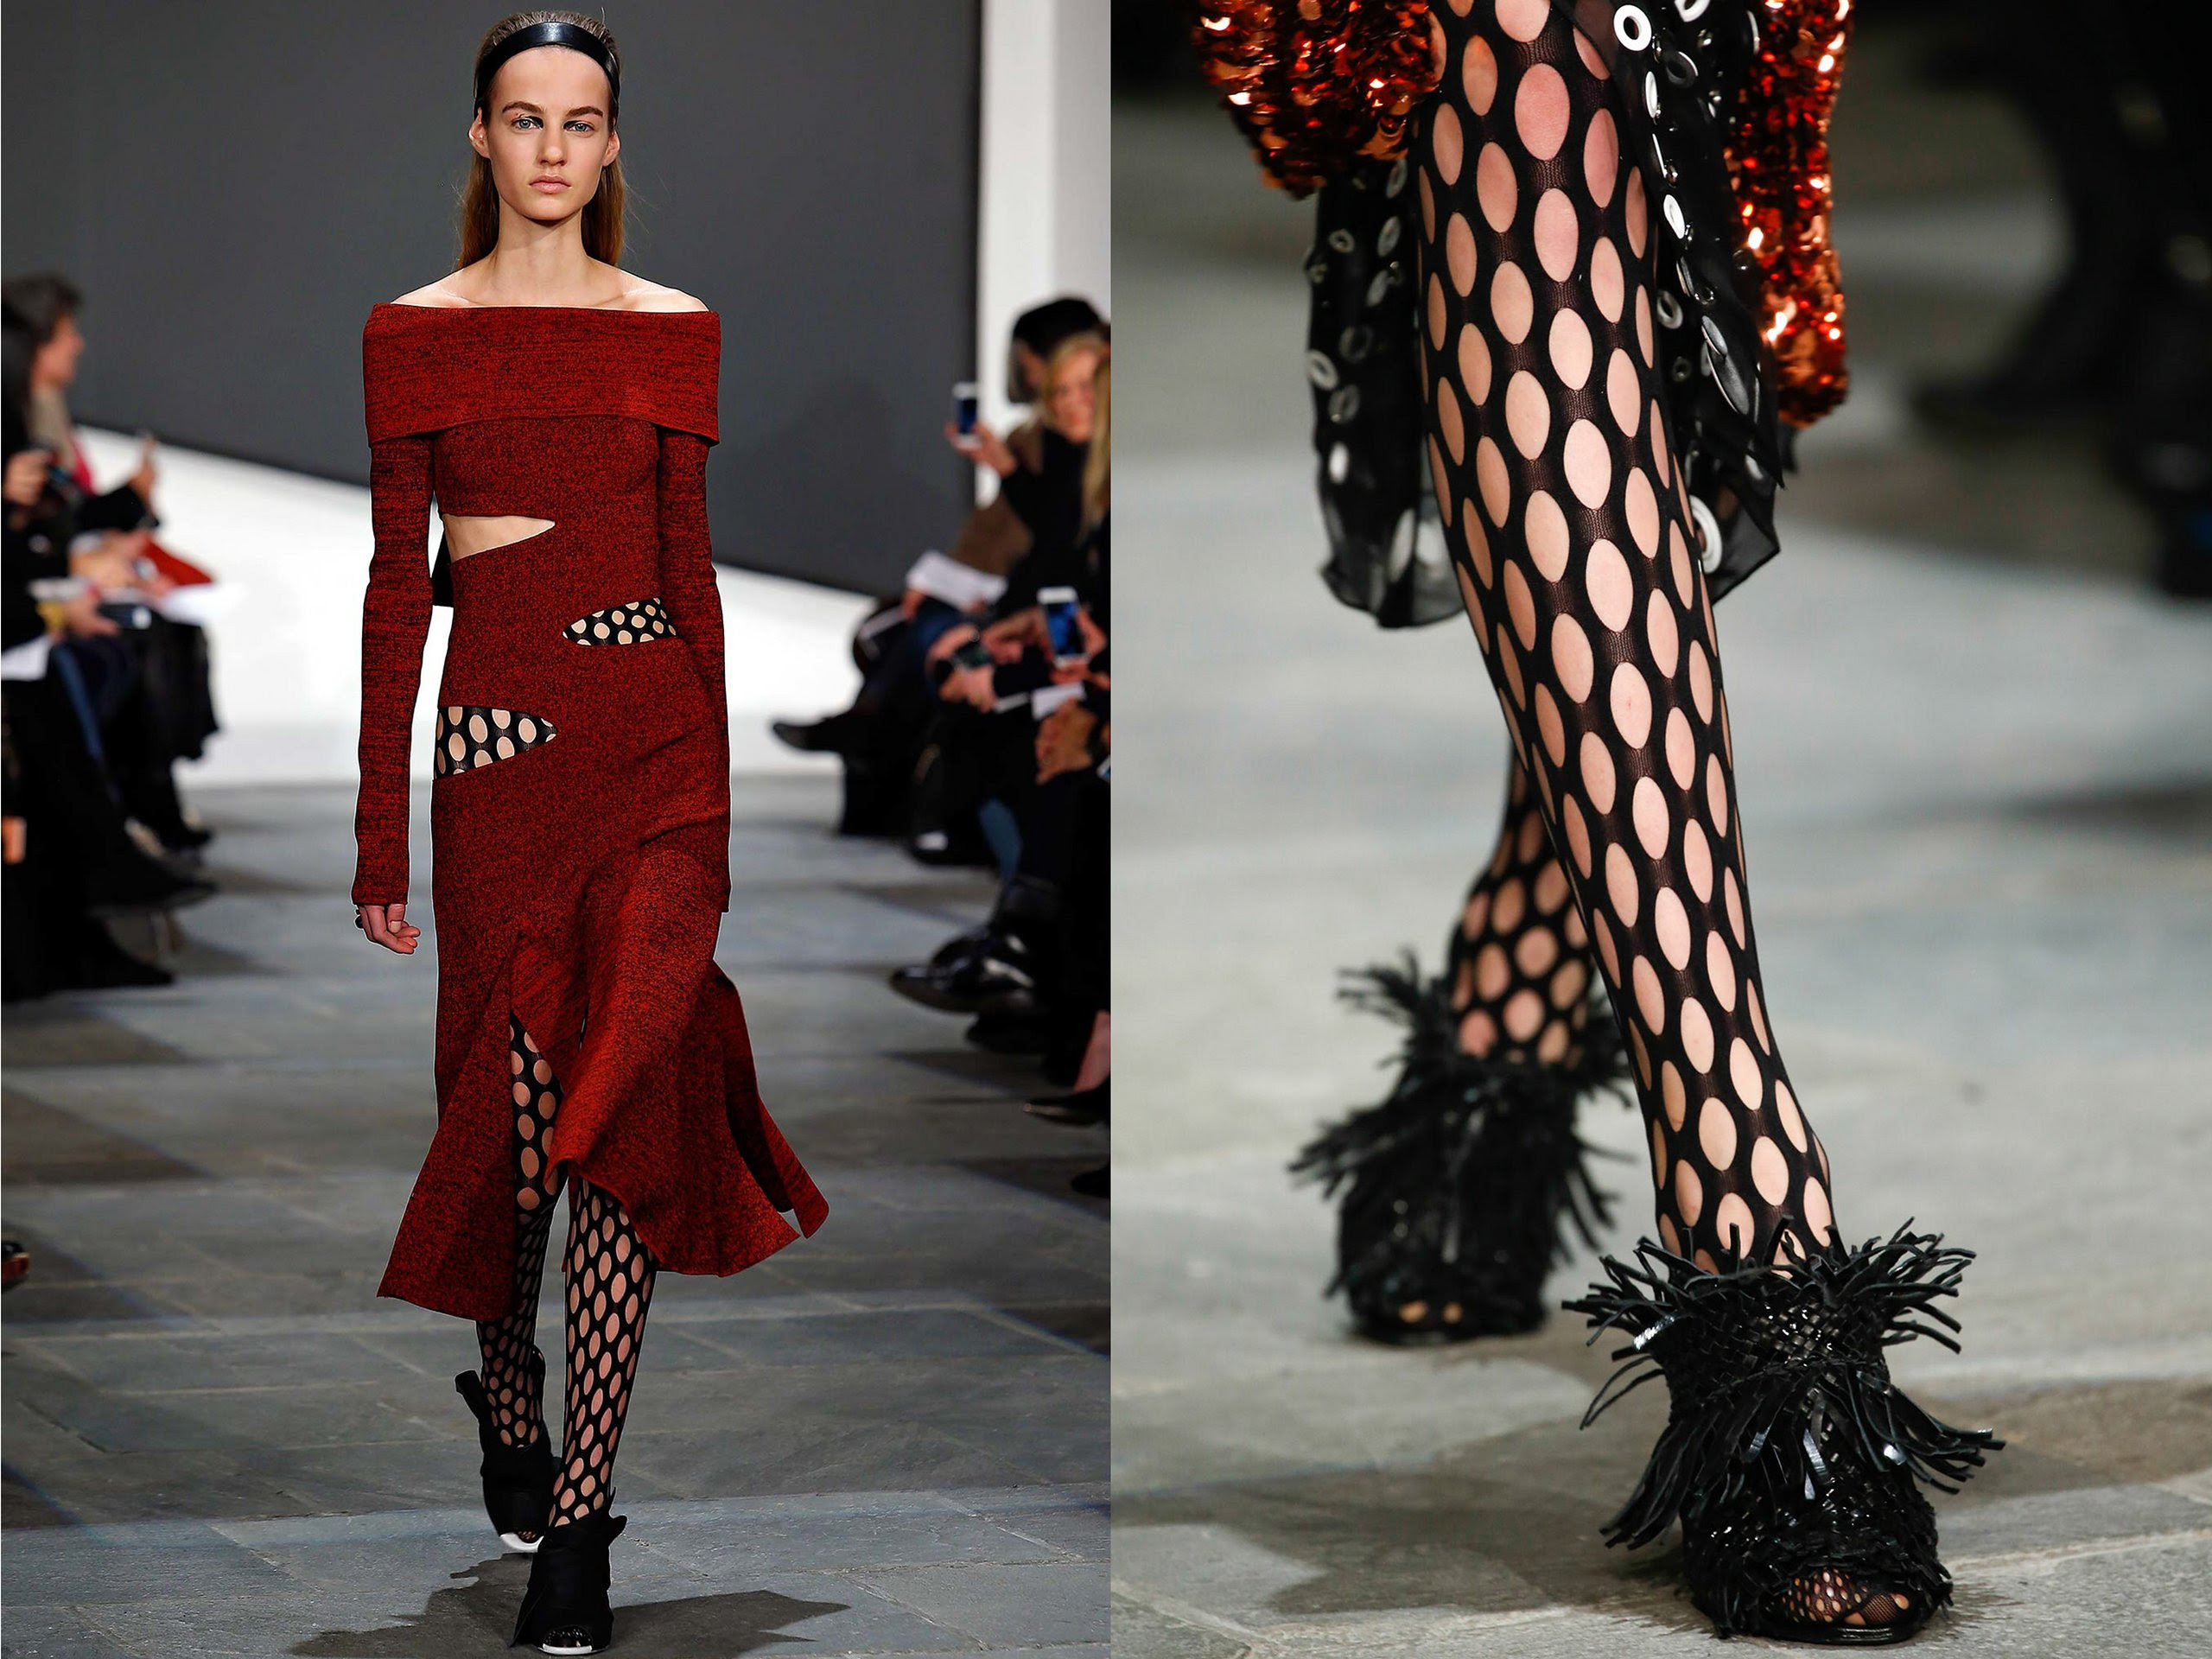 Image result for fish net trend spring summer 2019 off the runway